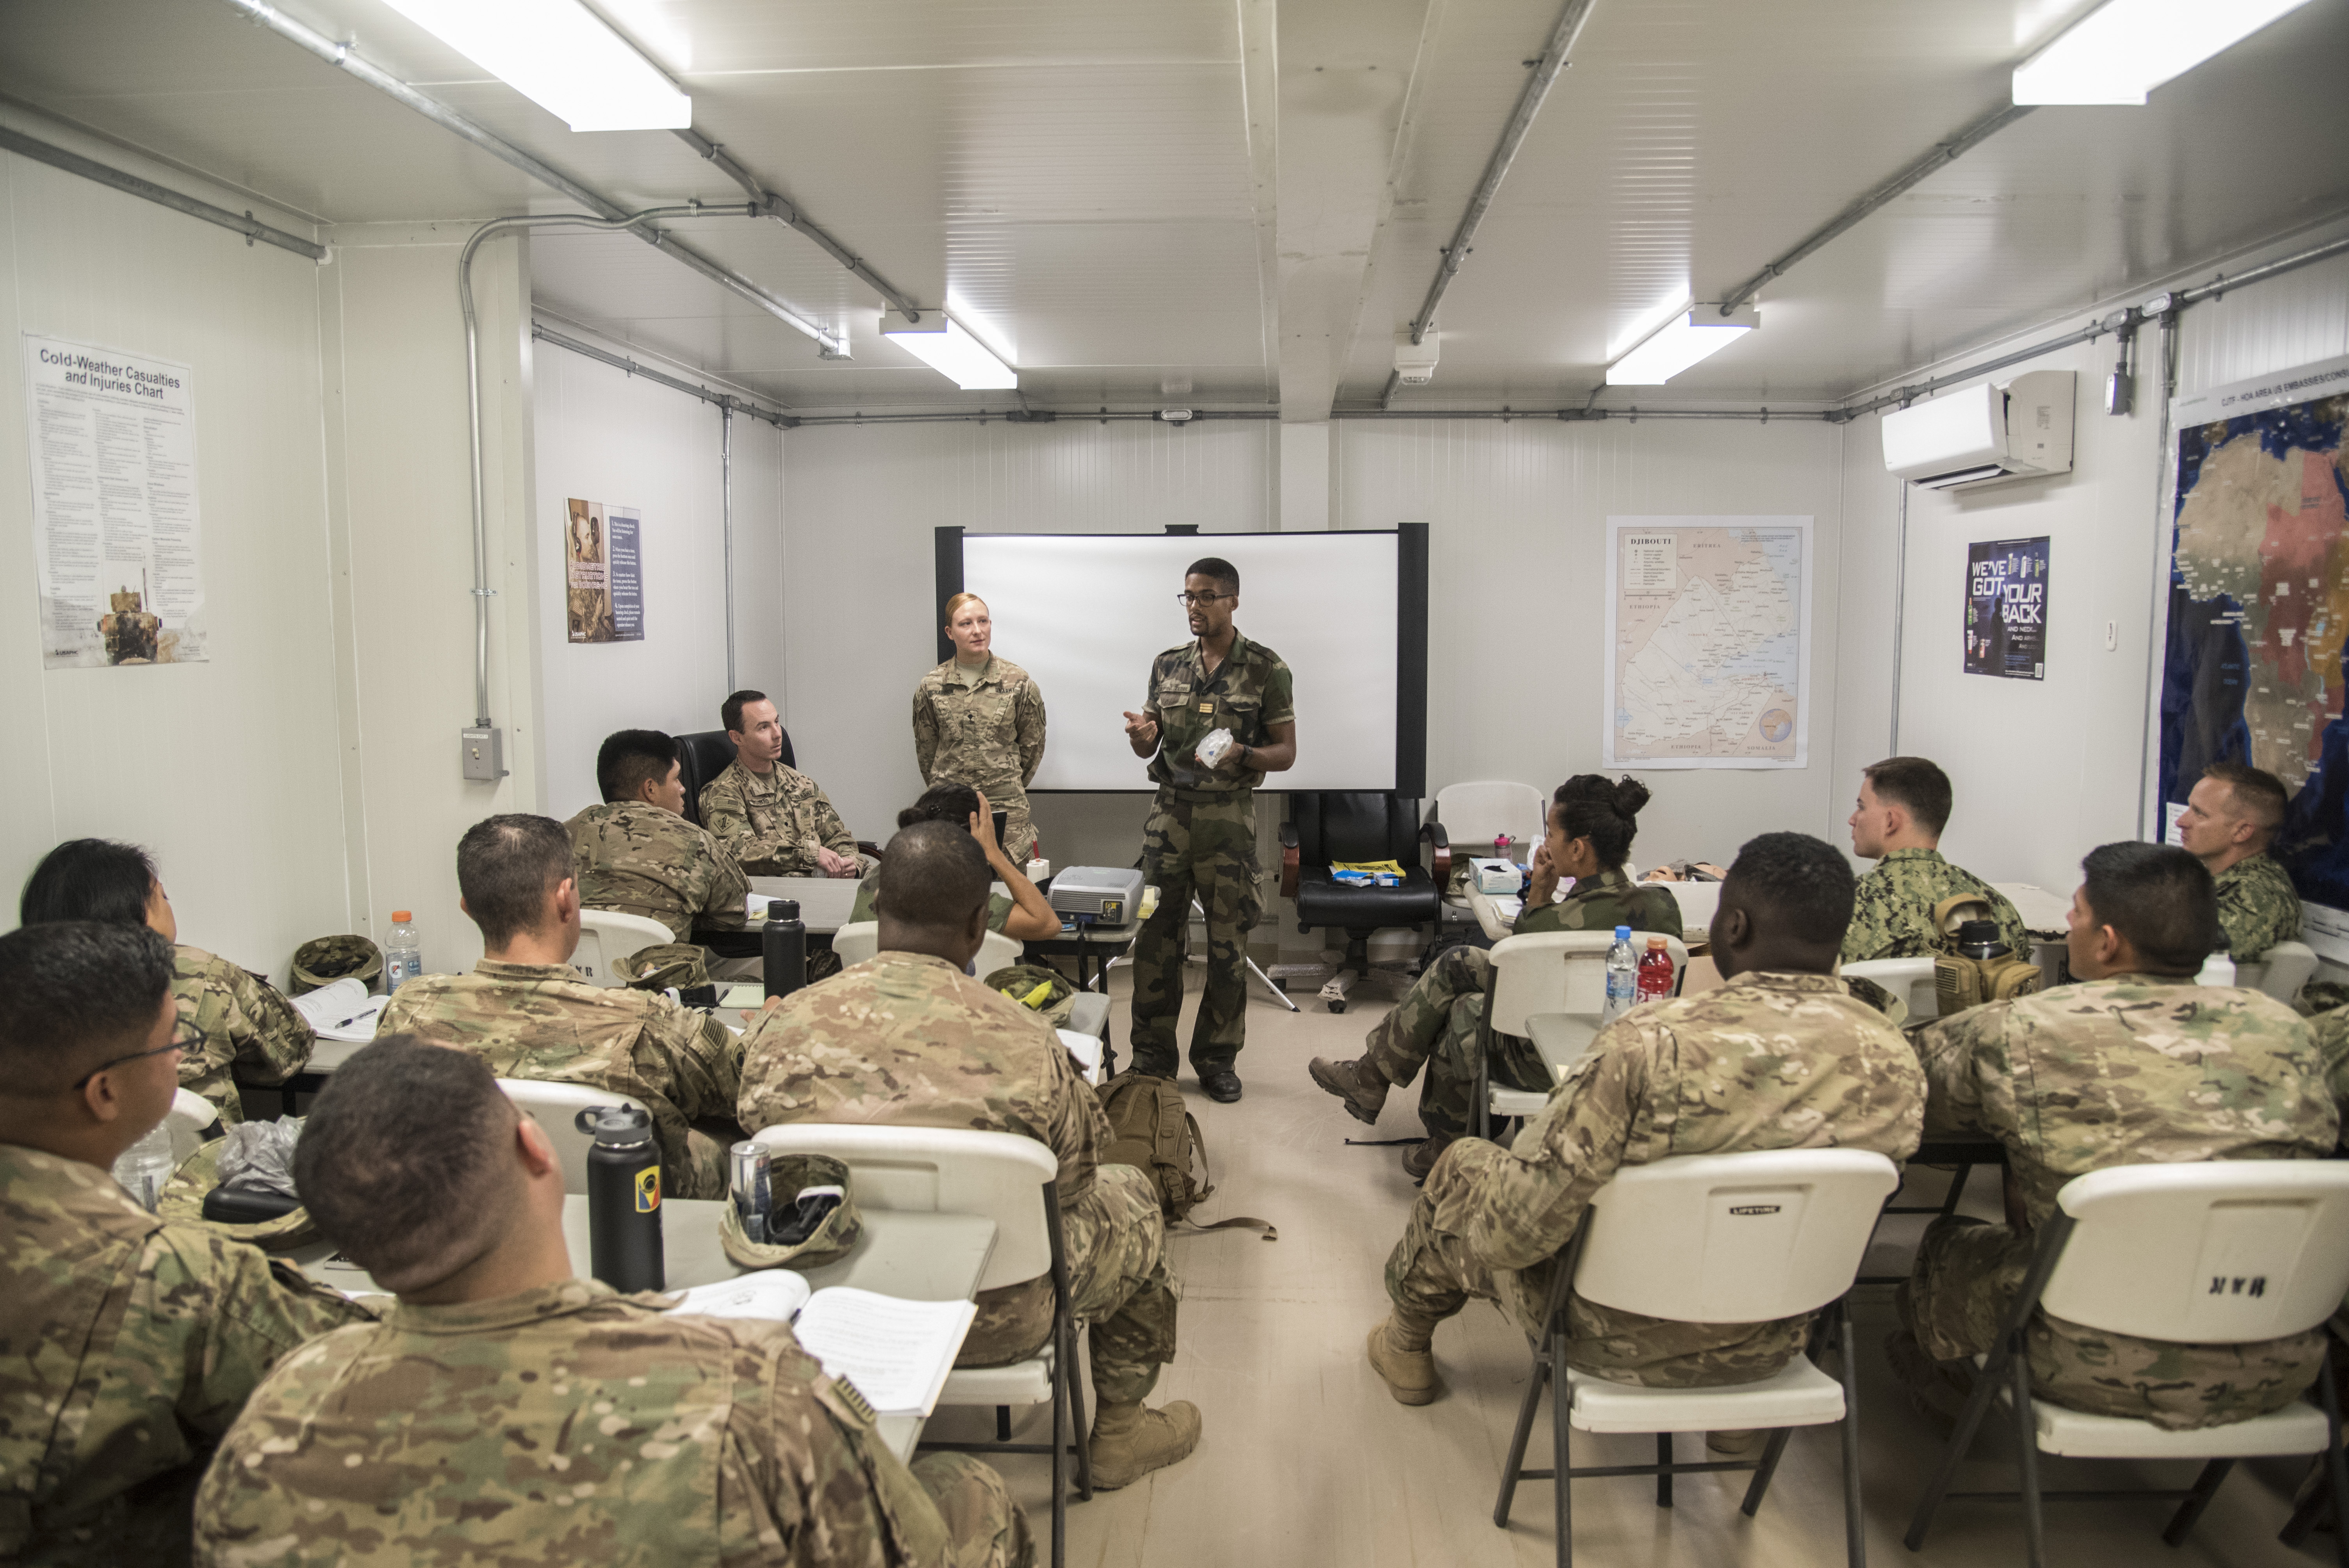 CAMP LEMONNIER, Djibouti- French Capt. Xavier, physician, demonstrates the French medical supplies and how they are used during a combat lifesaver course, June 21, 2016, at Camp Lemonnier, Djibouti. Taught by soldiers from the 403rd Civil Affairs Battalion assigned to Combined Joint Task Force-Horn of Africa, this four day CLS course was the first to have French service members attend to learn and share medical skillsets. (U.S. Air Force photo by Staff Sgt. Tiffany DeNault)